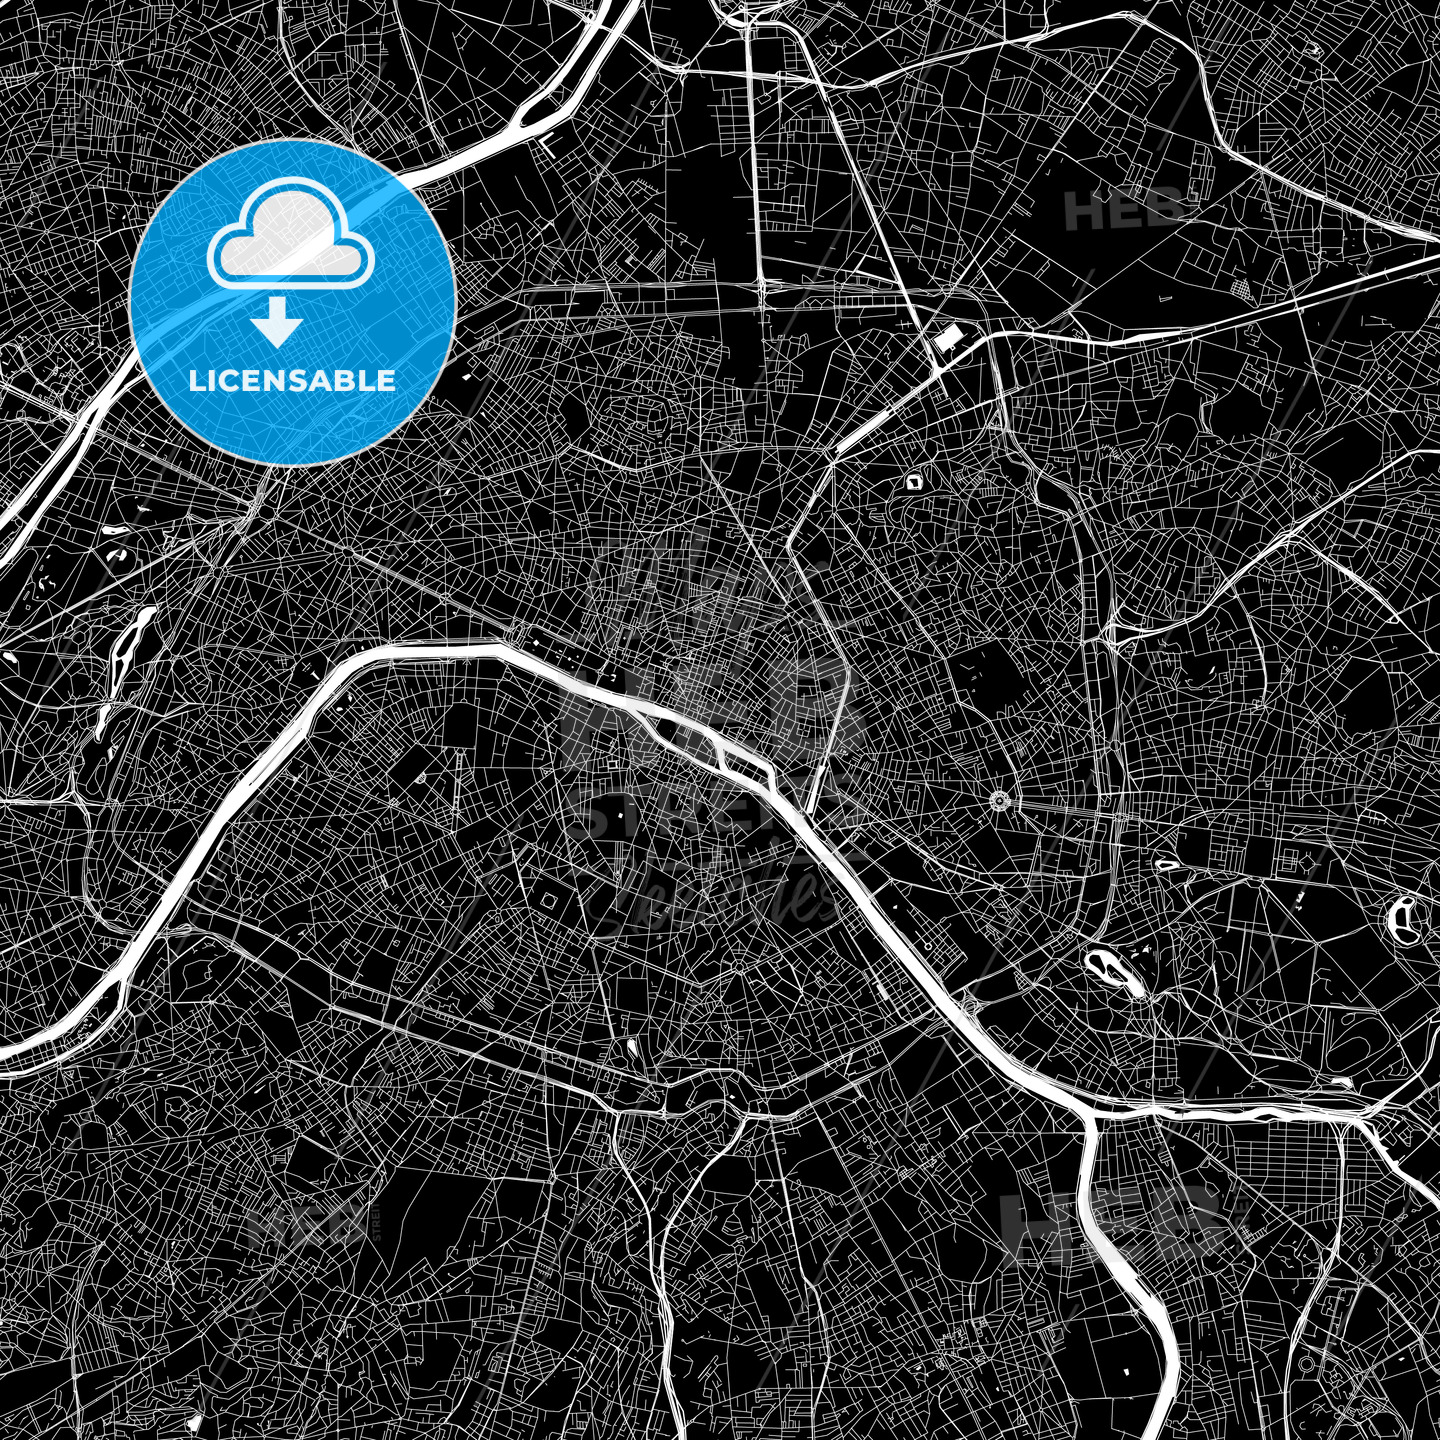 Paris Streetmap   columbiacares me in addition Paris Bus Route Maps With City Street Plan In PDF Or Image File besides Map of Paris tourist attractions  sightseeing   tourist tour likewise Bastille   Wikipedia as well paris street map download Archives   HEBSTREITS also Map of Vienna tourist attractions  sightseeing   tourist tour likewise  moreover  in addition Paris Metro Map – The Redesign   Smashing Magazine furthermore Reap Tourist Spots Map Siem Pdf – uncmanagement info furthermore Hop On Hop Off Florence Map Pdf Pleasant Best 25 Carte touristique additionally Touristic Map Street Maps Printable On Of Tourist Paris Pdf together with Paris Metro Map   Subway Travel Guide   Download the Map in PDF moreover  in addition Best Las Vegas Strip Maps as well Paris Metro Maps   Paris by Train. on street map of paris pdf